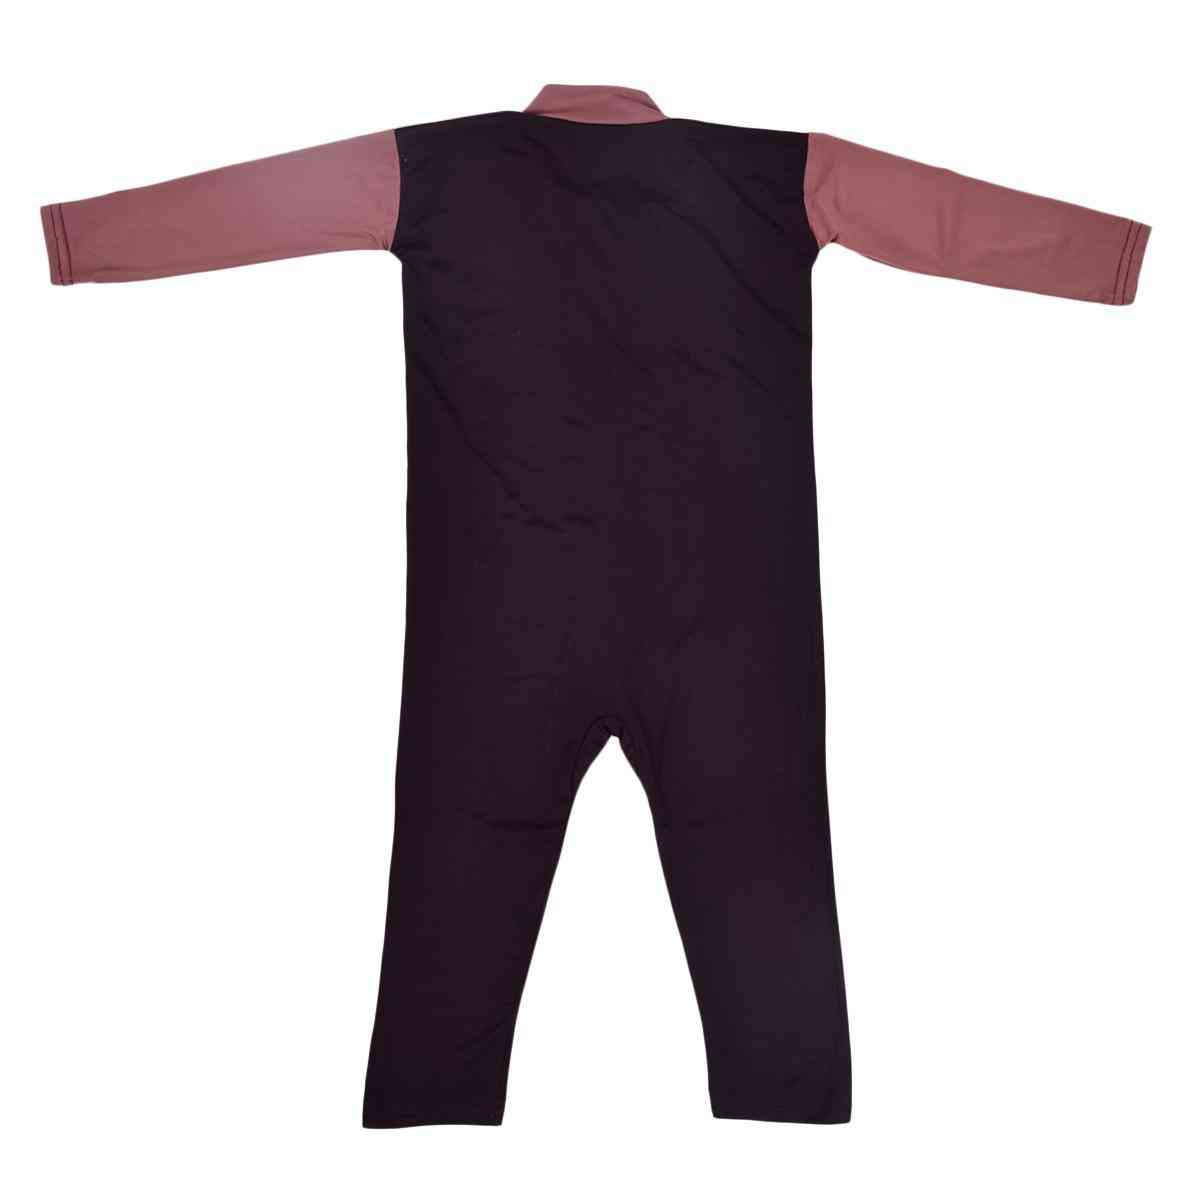 Full Zipper Swimsuit for Boys (Good Quality and Elastic Material and Parachute Fabric)